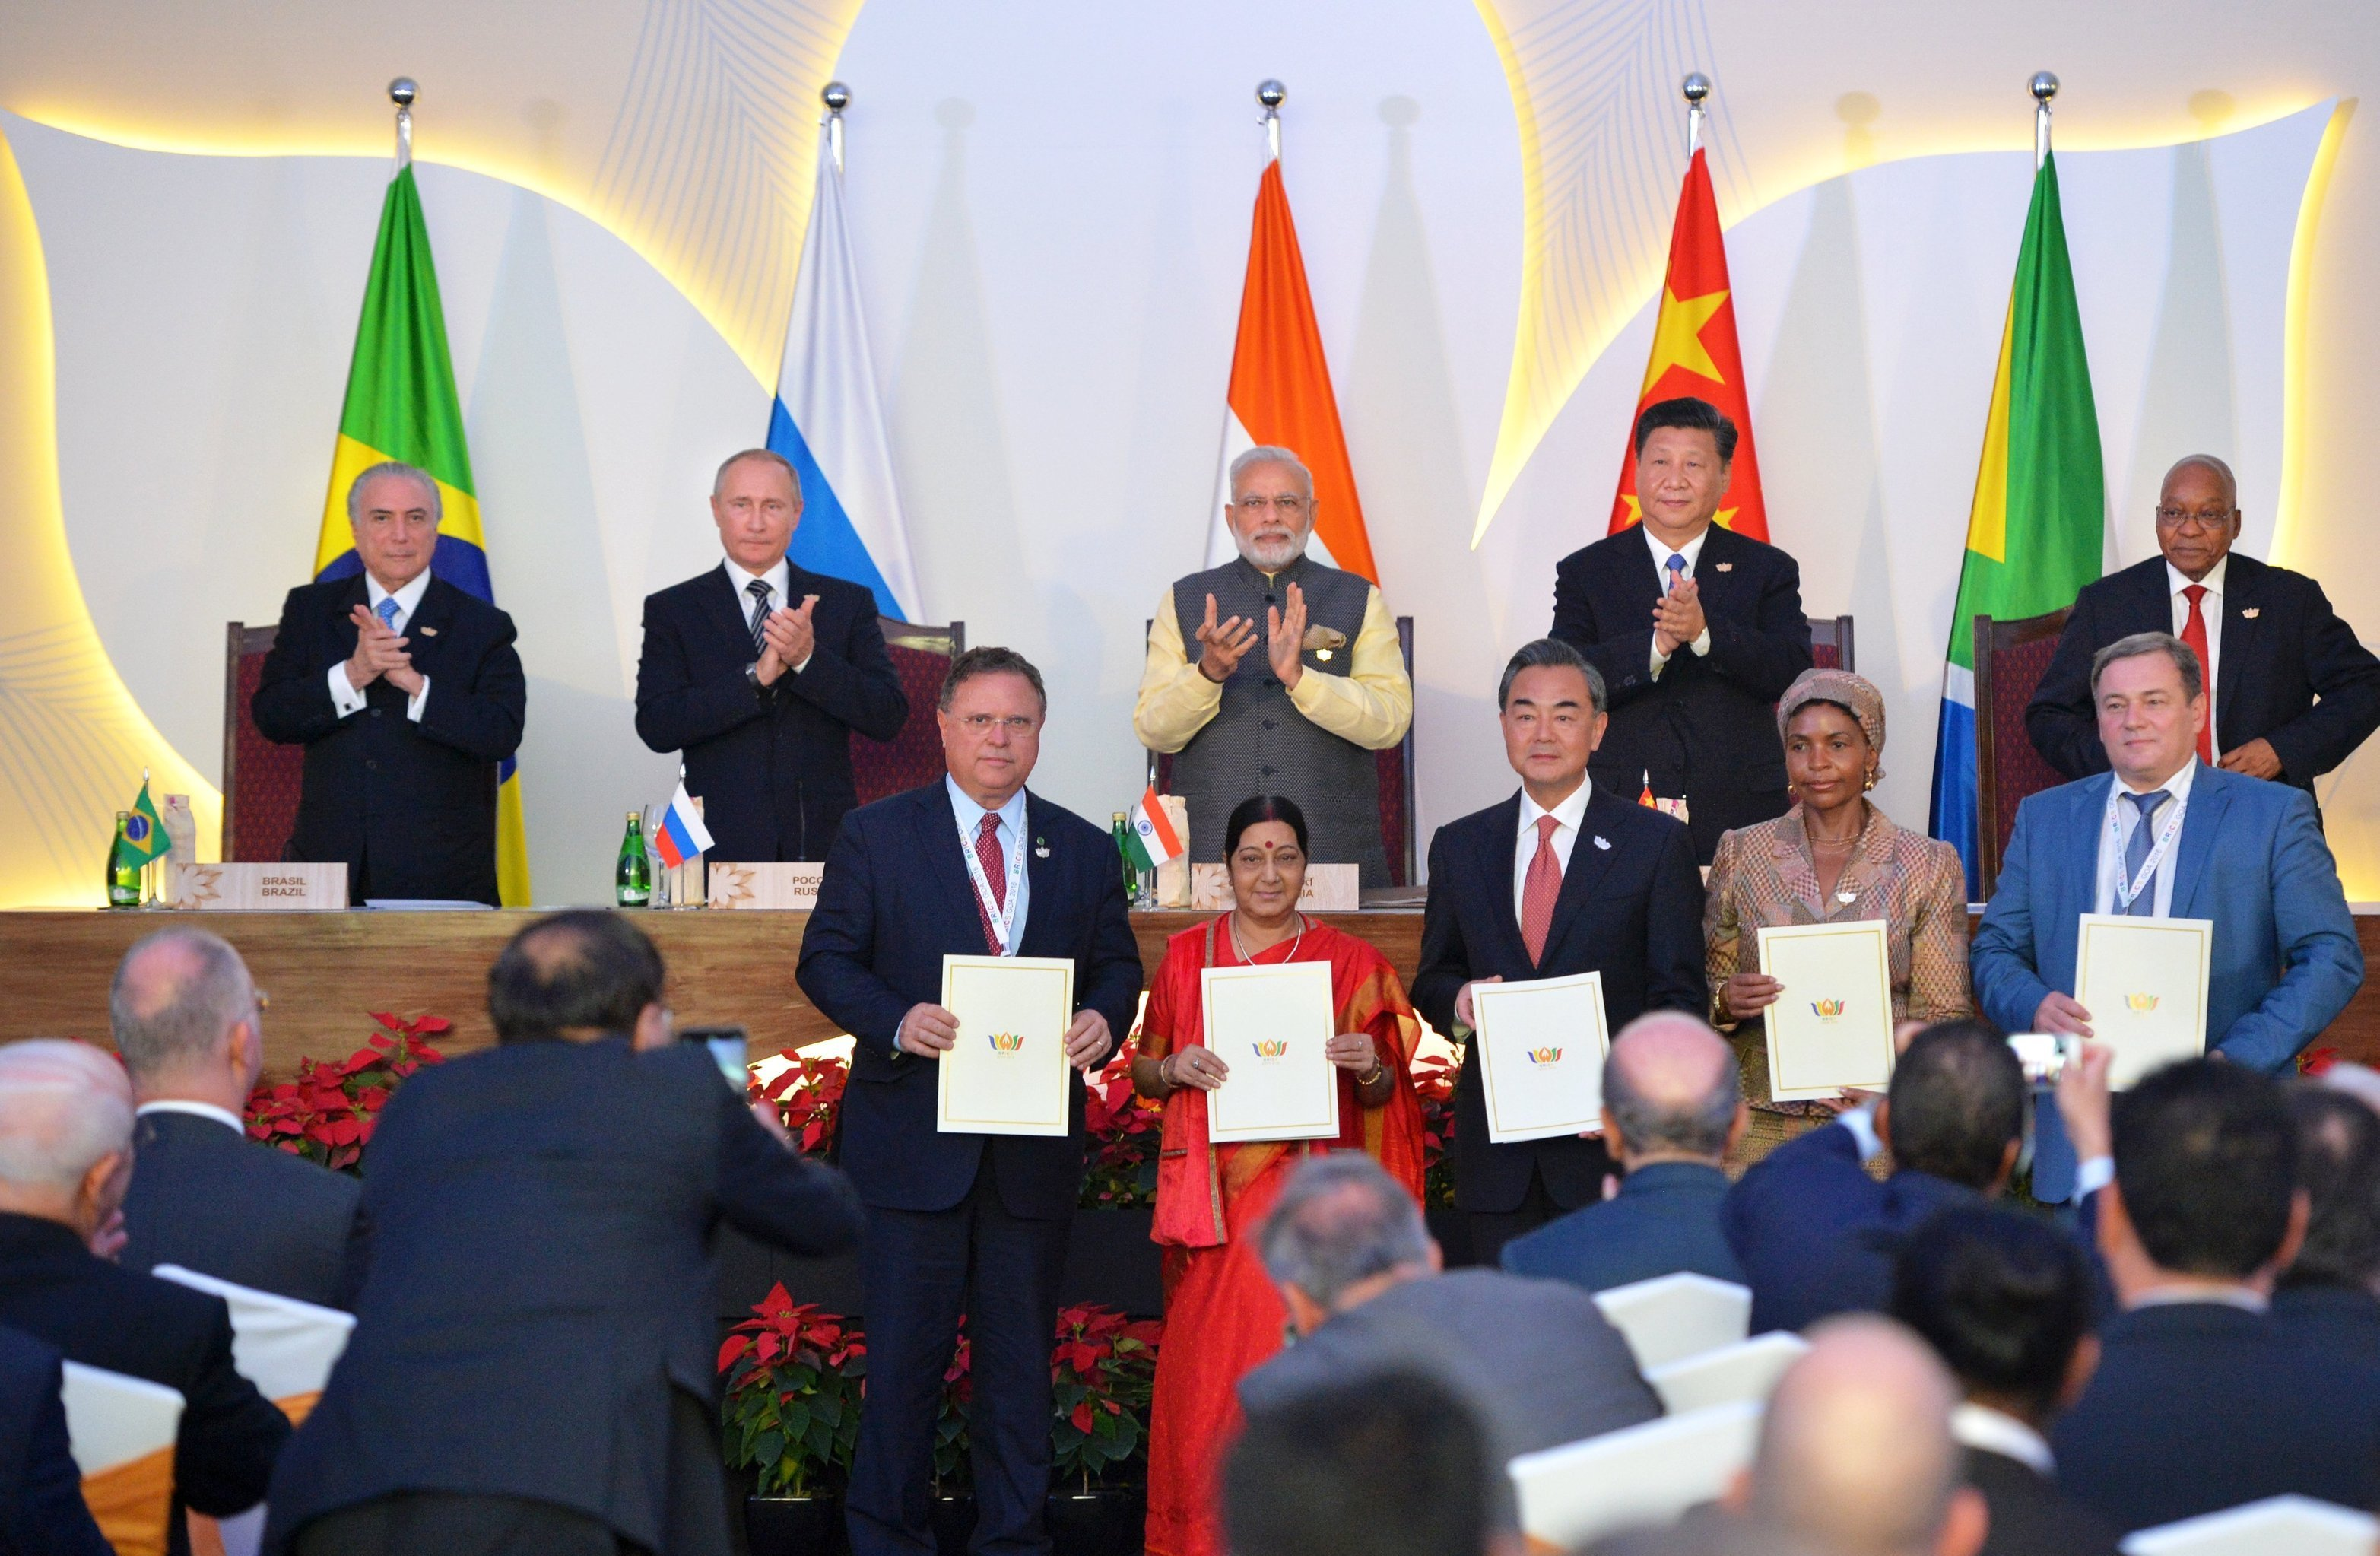 BRICS leaders at the 2016 summit in Goa.